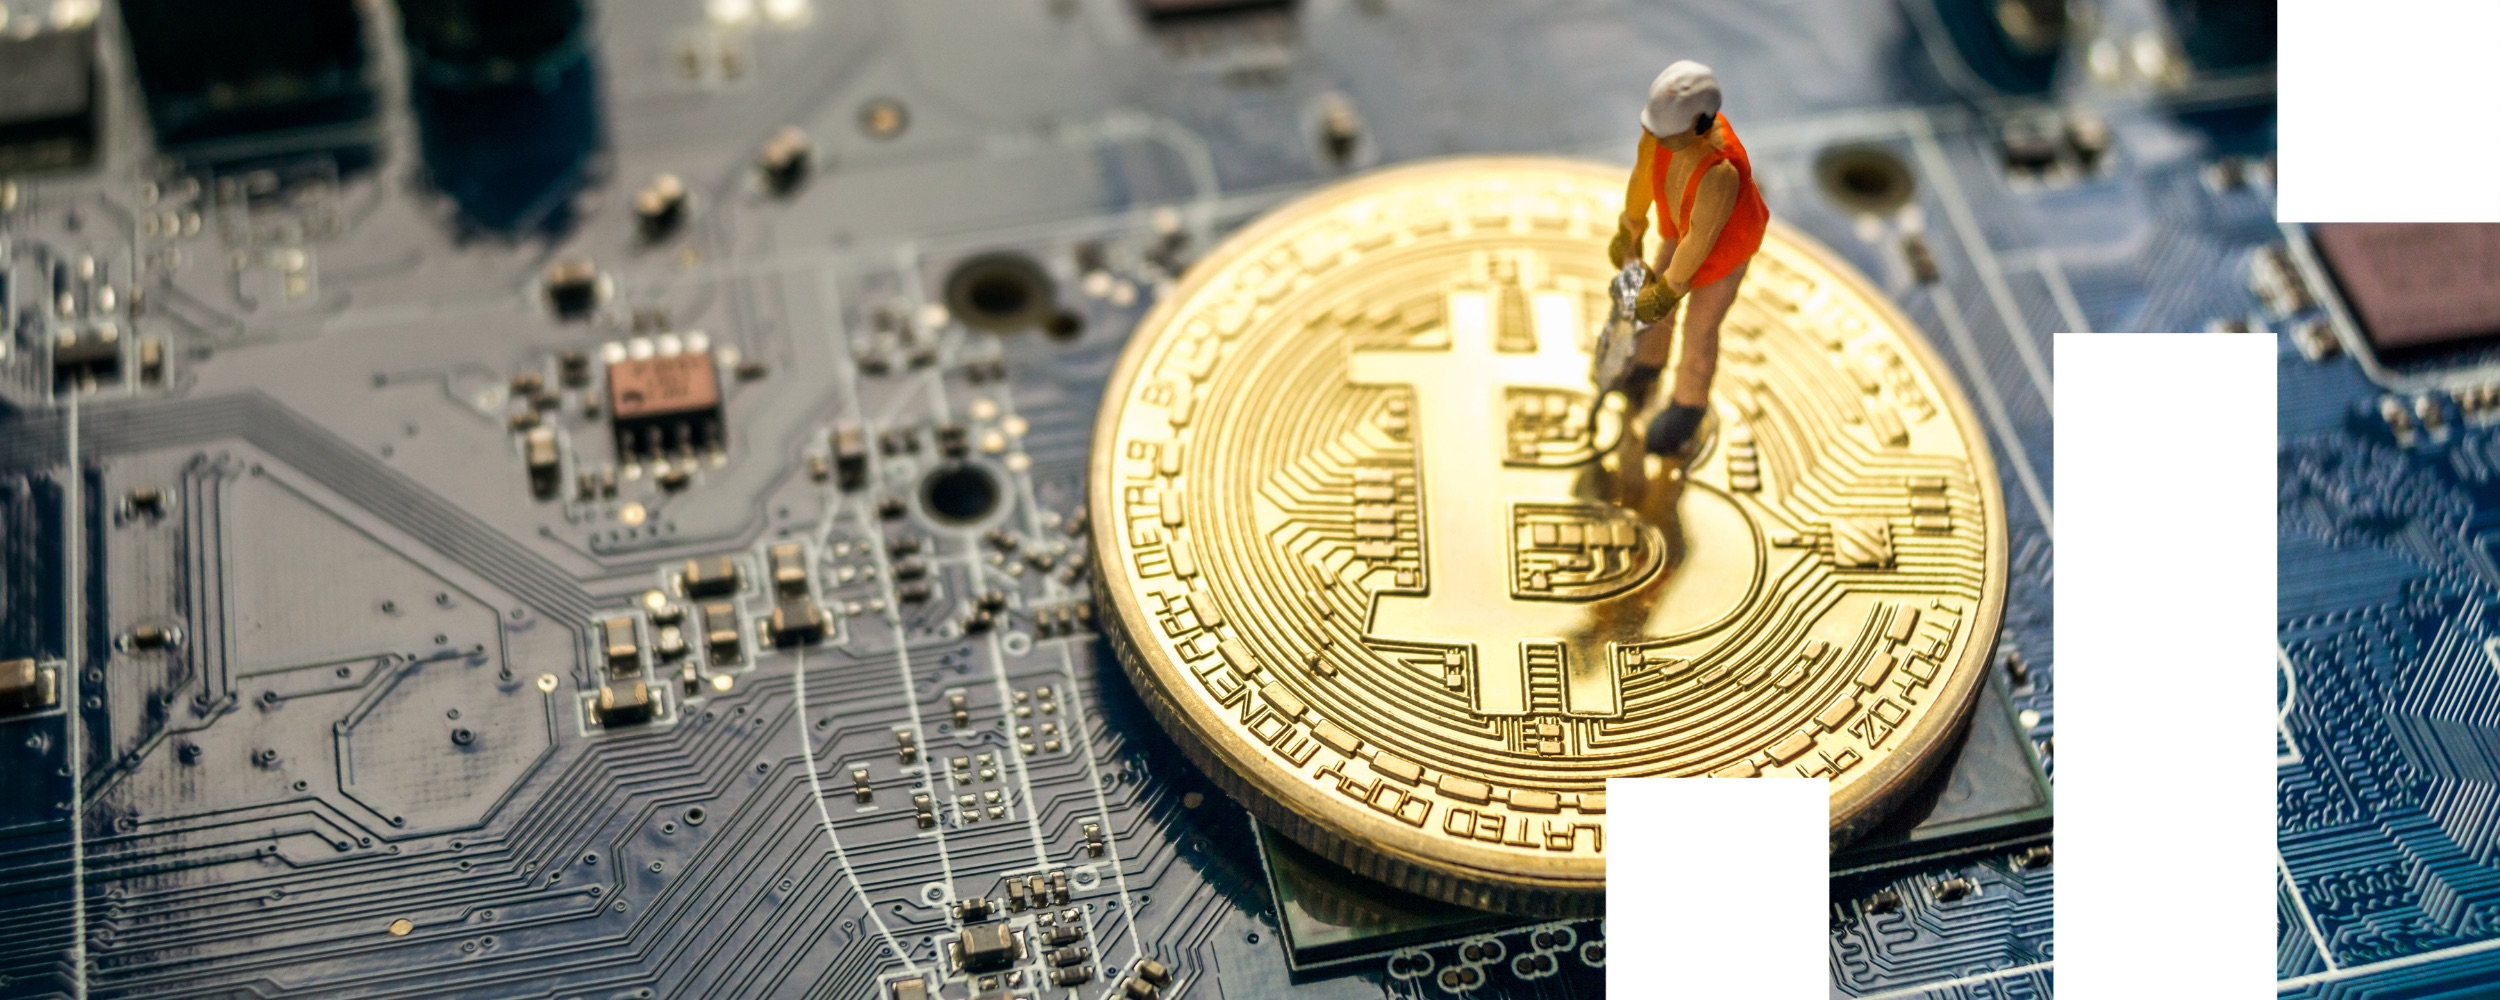 /bitcoin-in-2020-how-to-make-the-right-valuation-7a433wi5 feature image